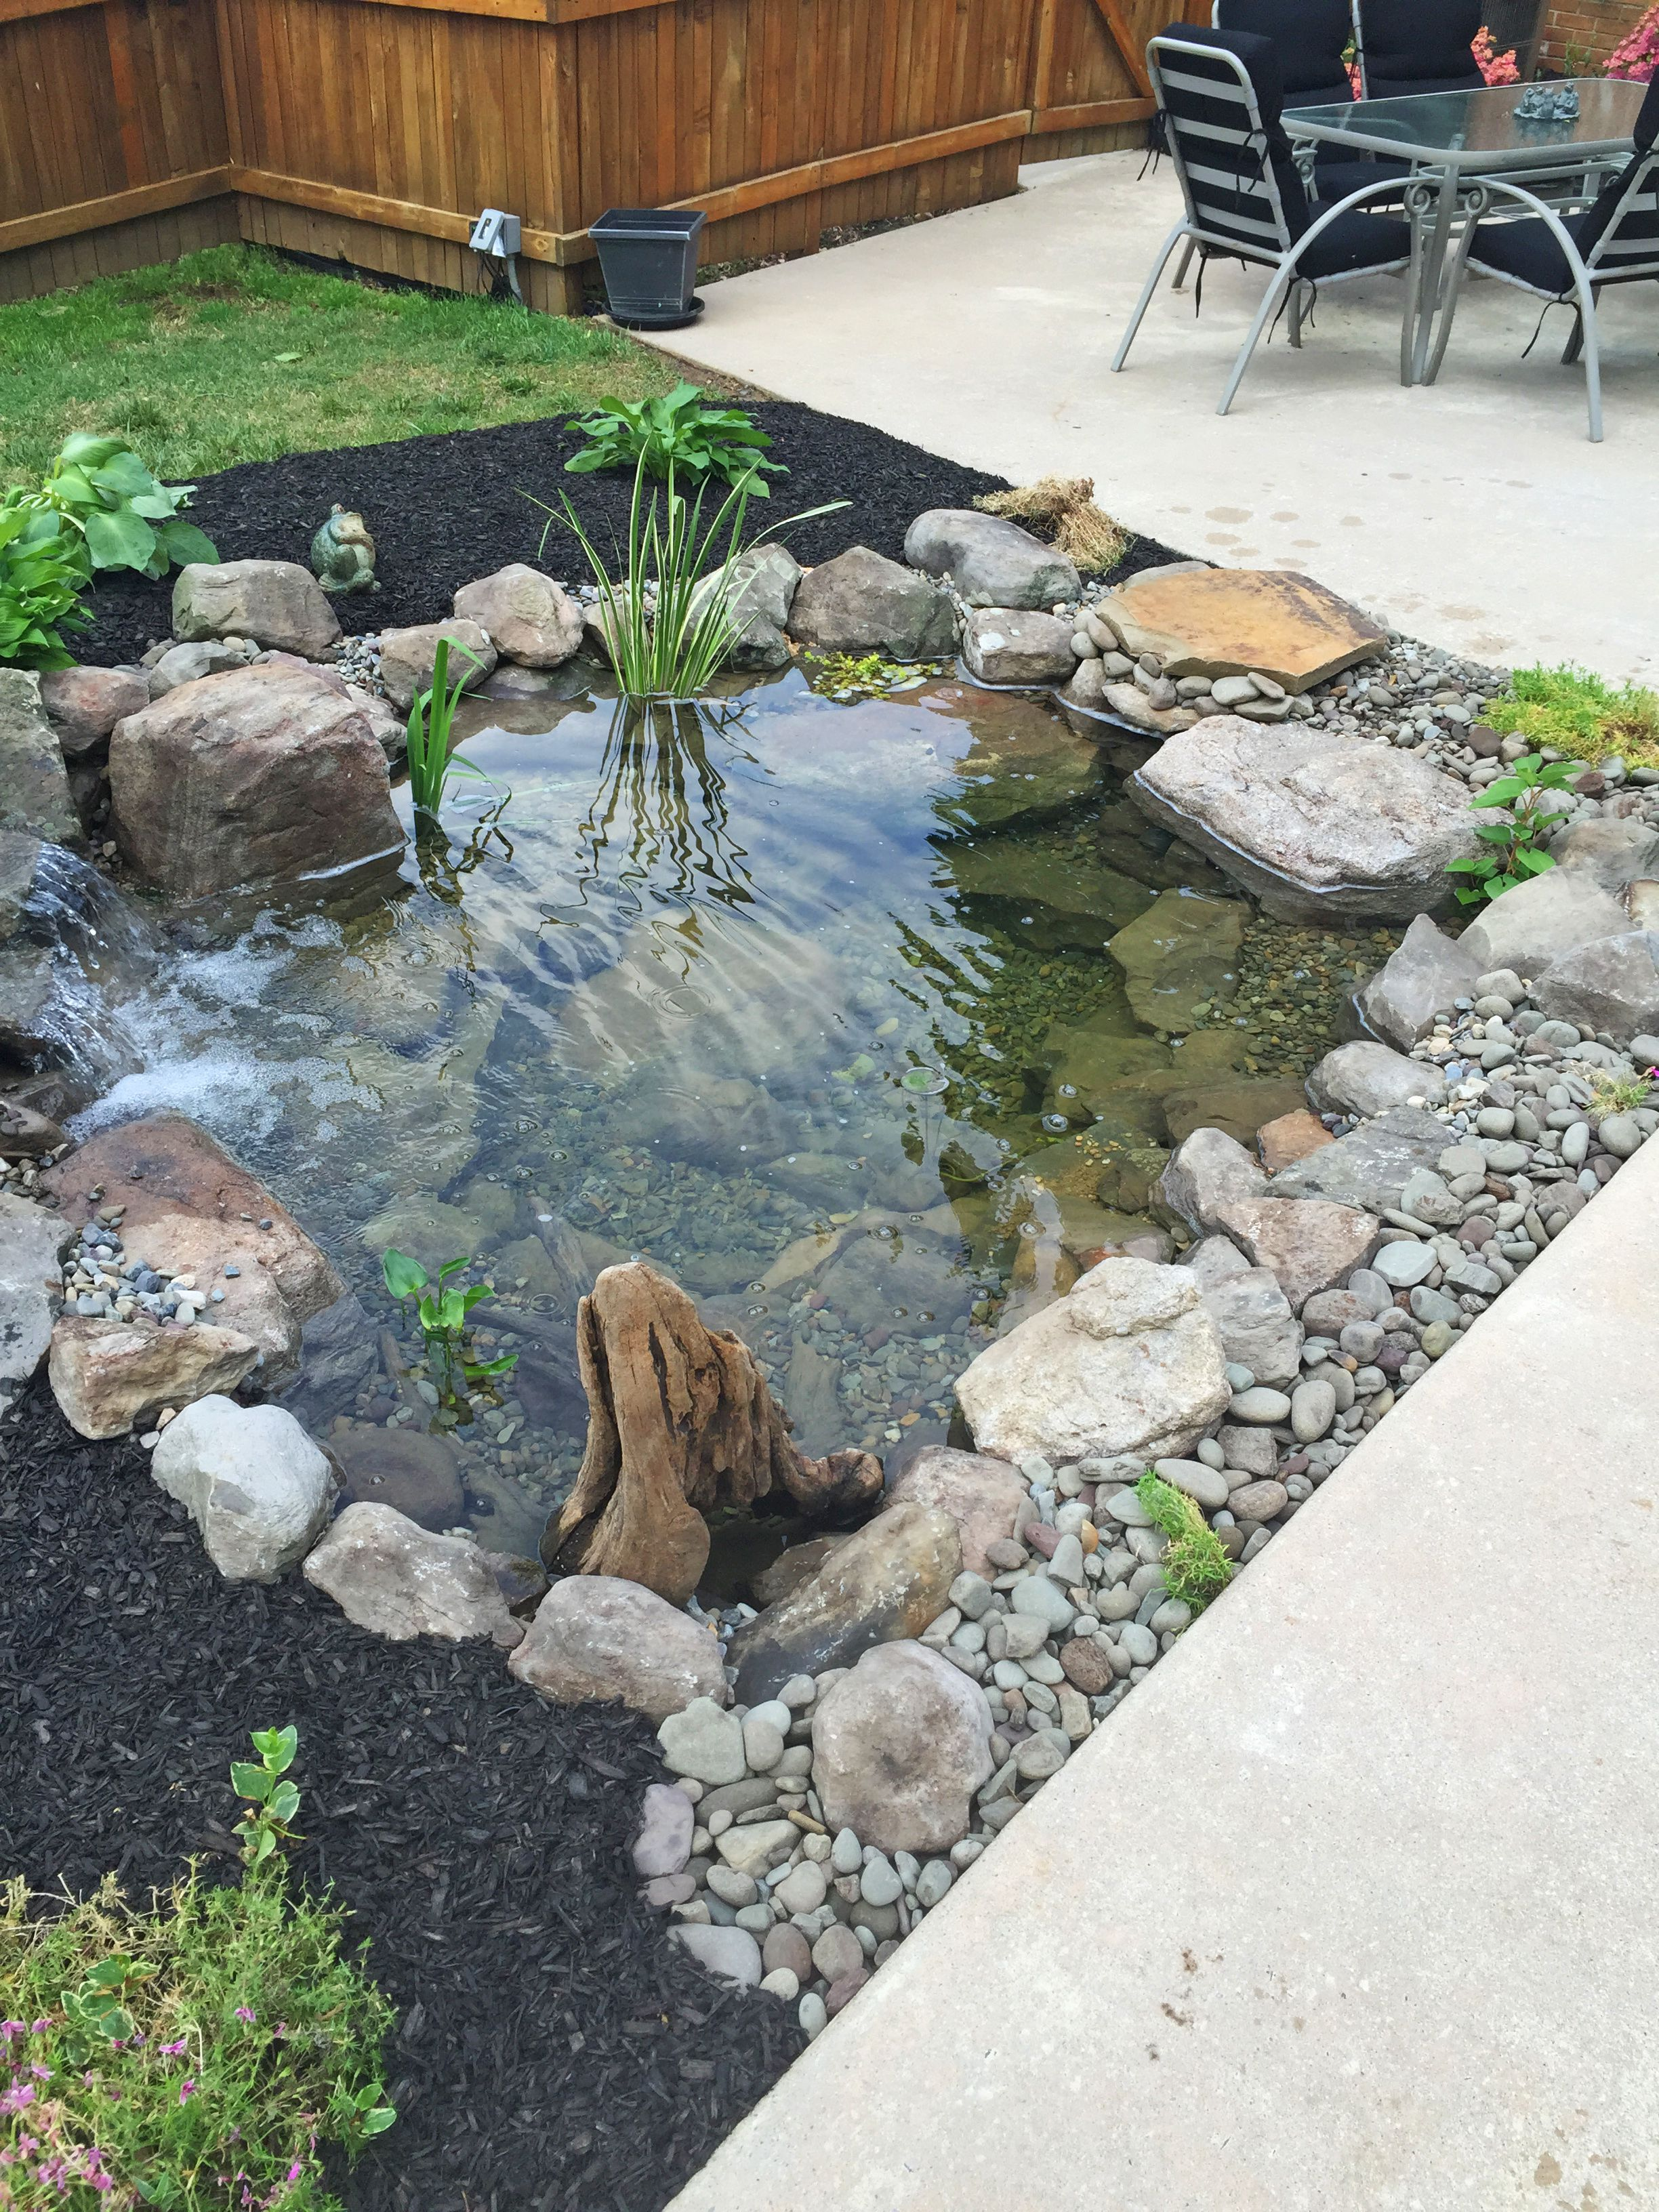 Backyard fish pond waterfall koi water garden waterscapes for Backyard koi fish pond